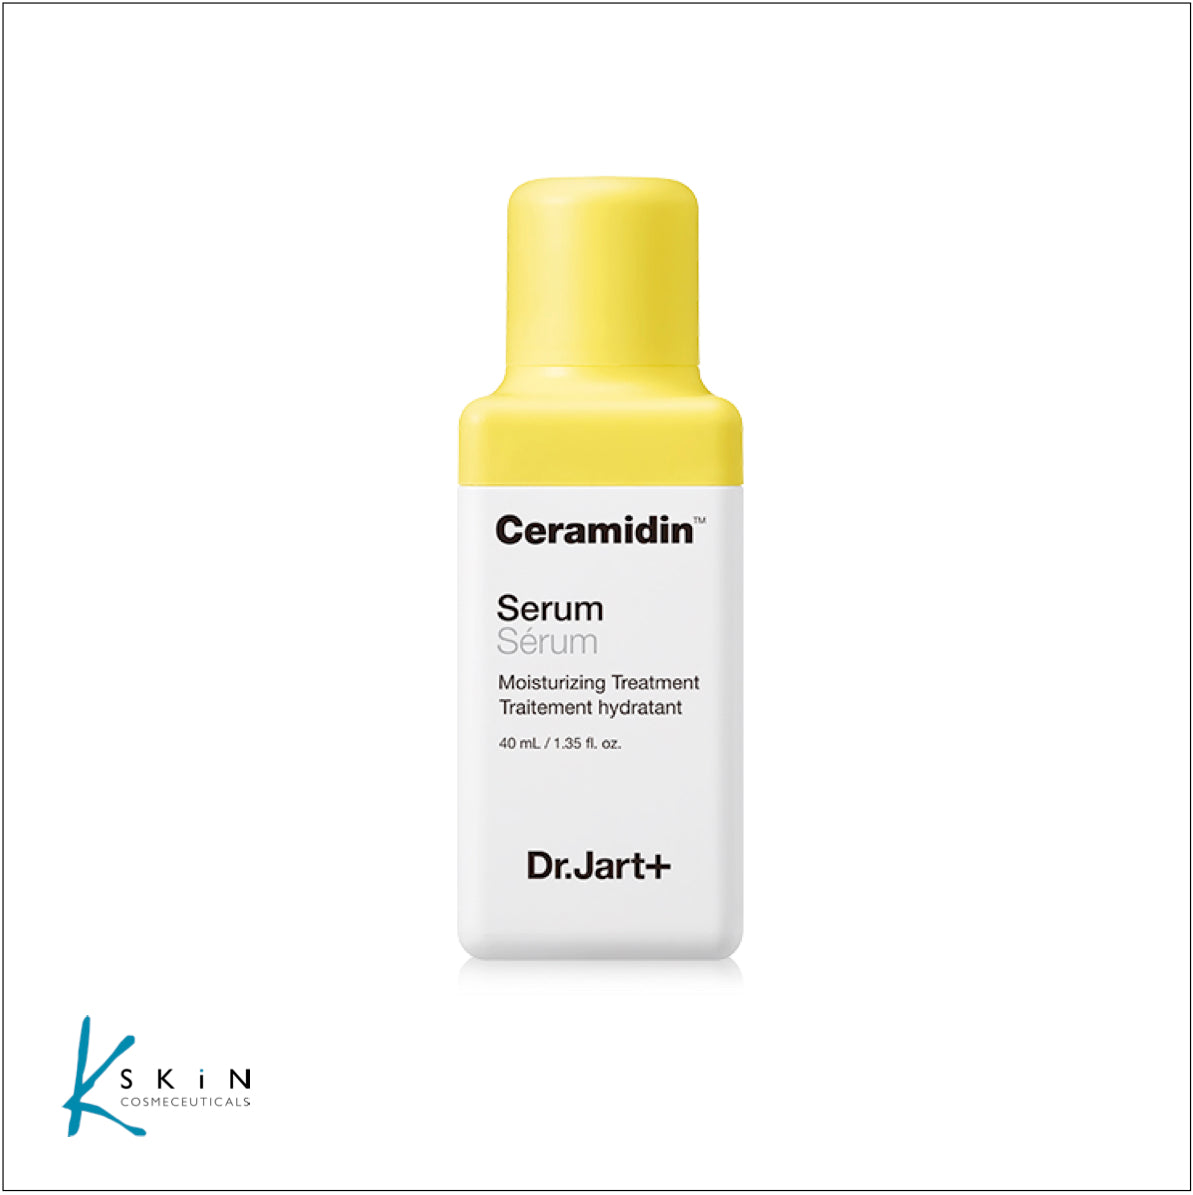 Dr. Jart+ Ceramidin™ Serum 40ml - www.Kskin.ie